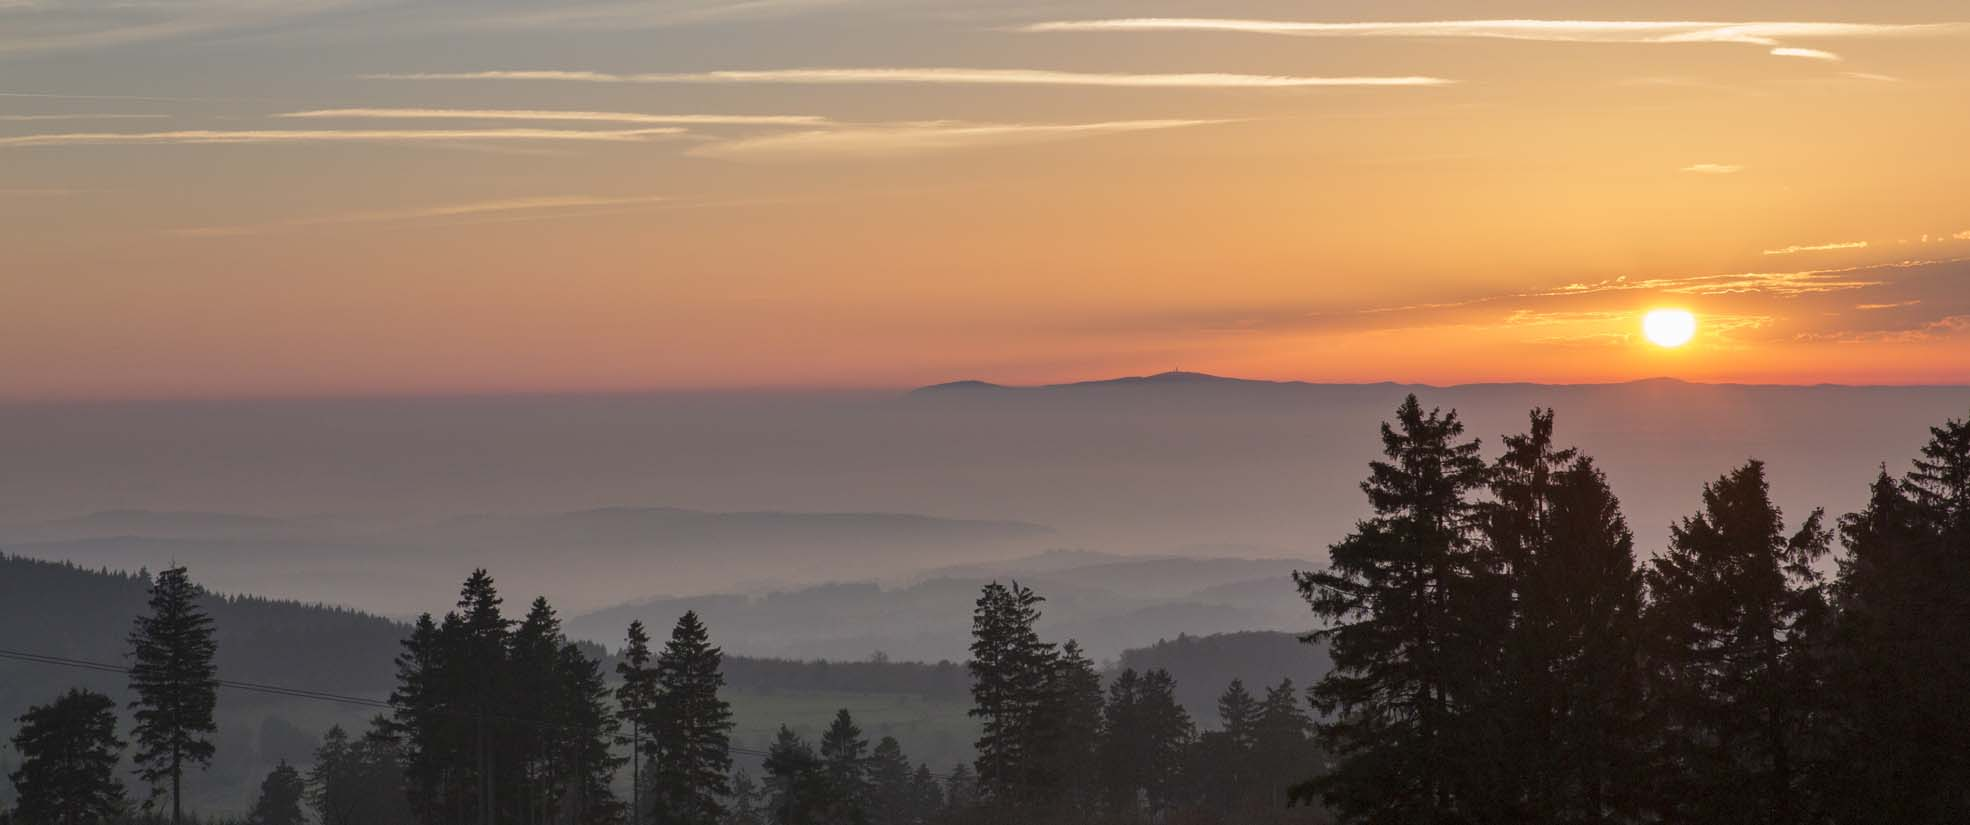 Höhenblick: Sonnenuntergang über dem Taunus